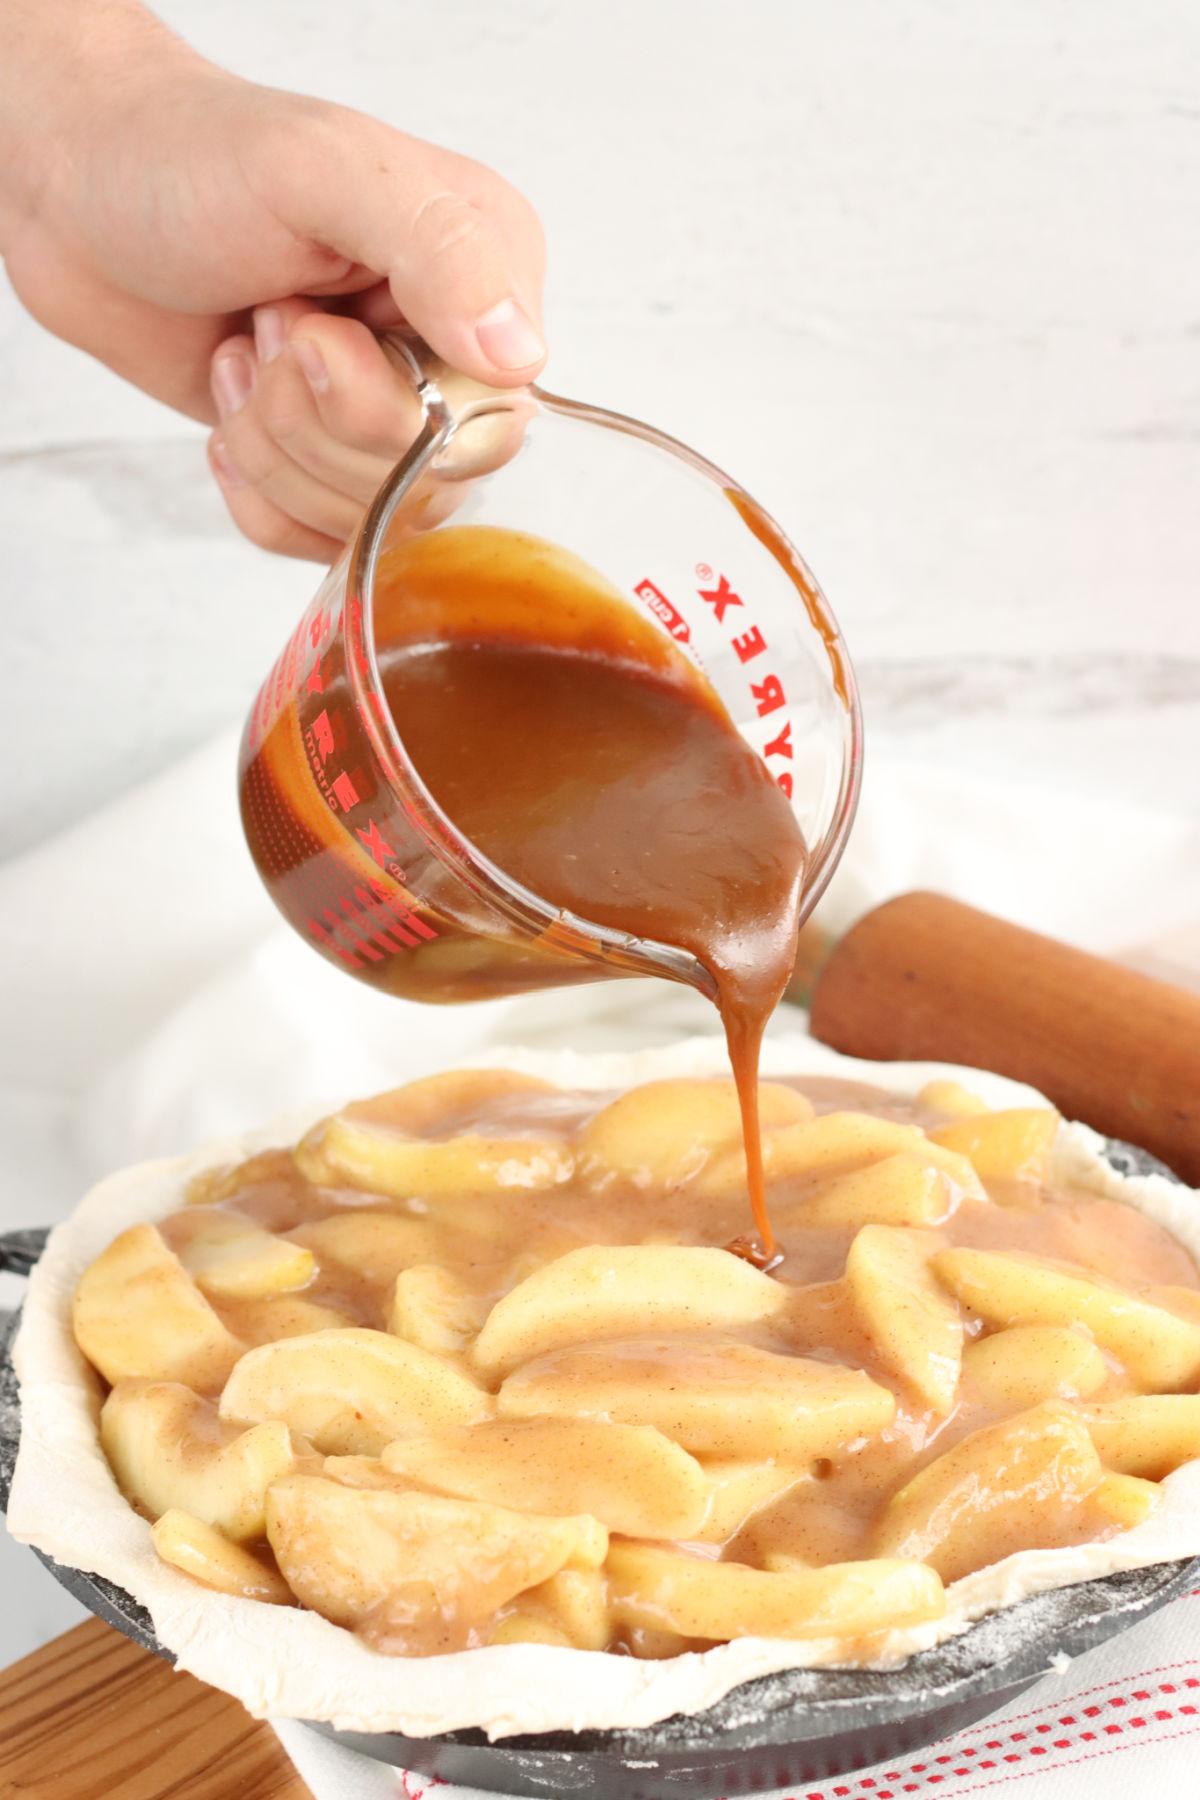 hand pouring caramel sauce over unbaked apple pie.